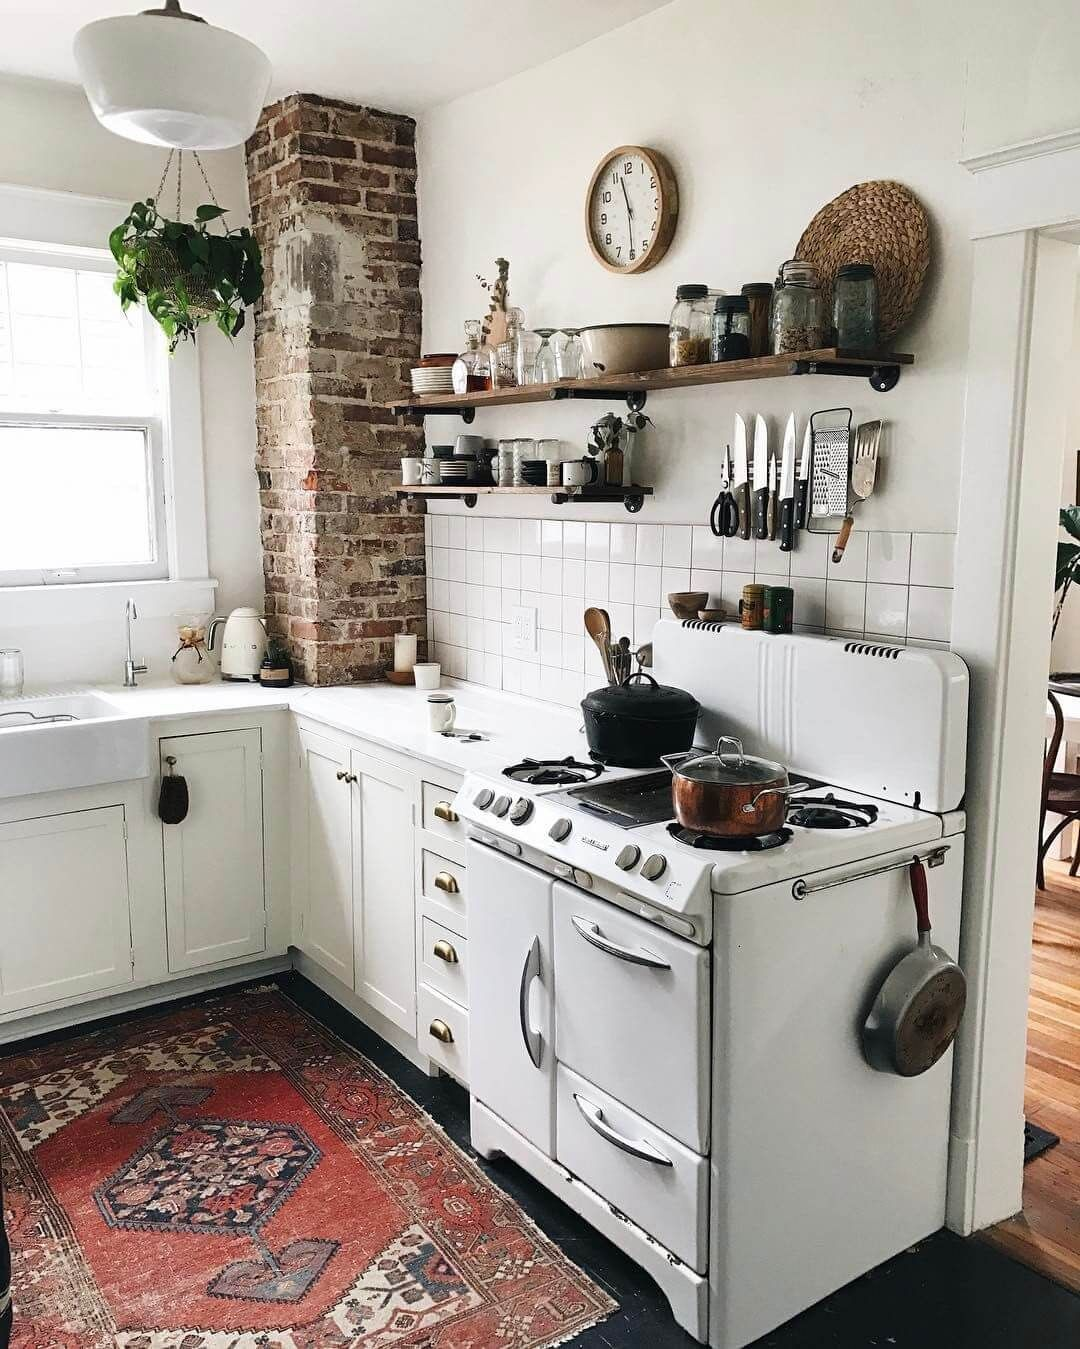 Retro Kitchen Decor: 30 Timeless Cottage Kitchen Designs For A New Look